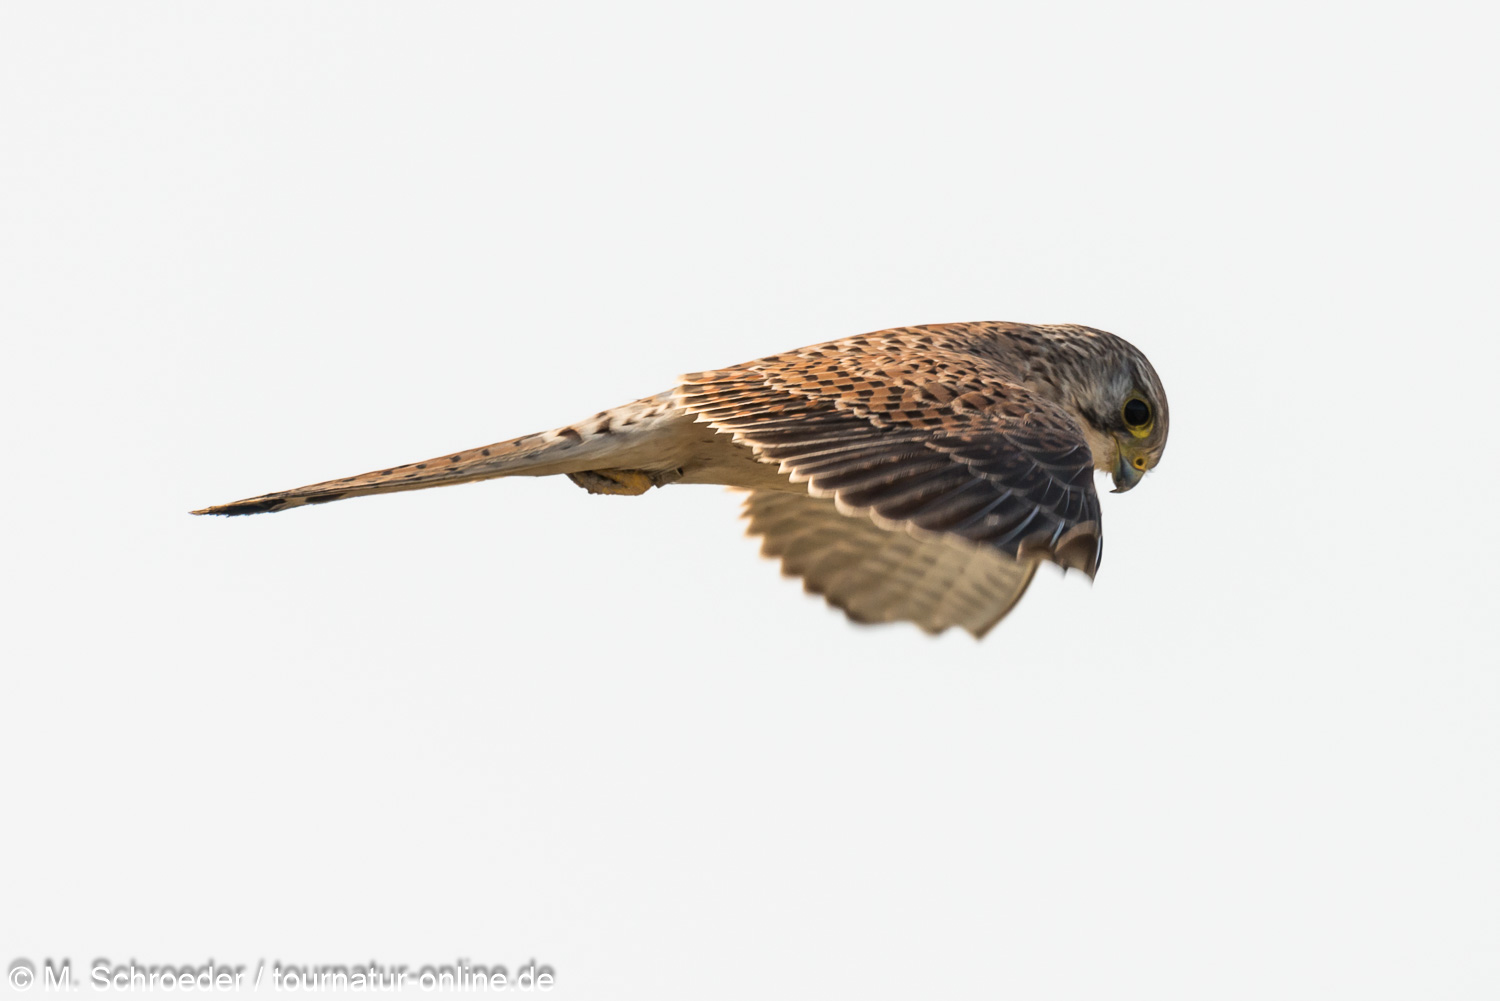 Turmfalke, weibl.  - common kestrel (Falco tinnunculus) , female